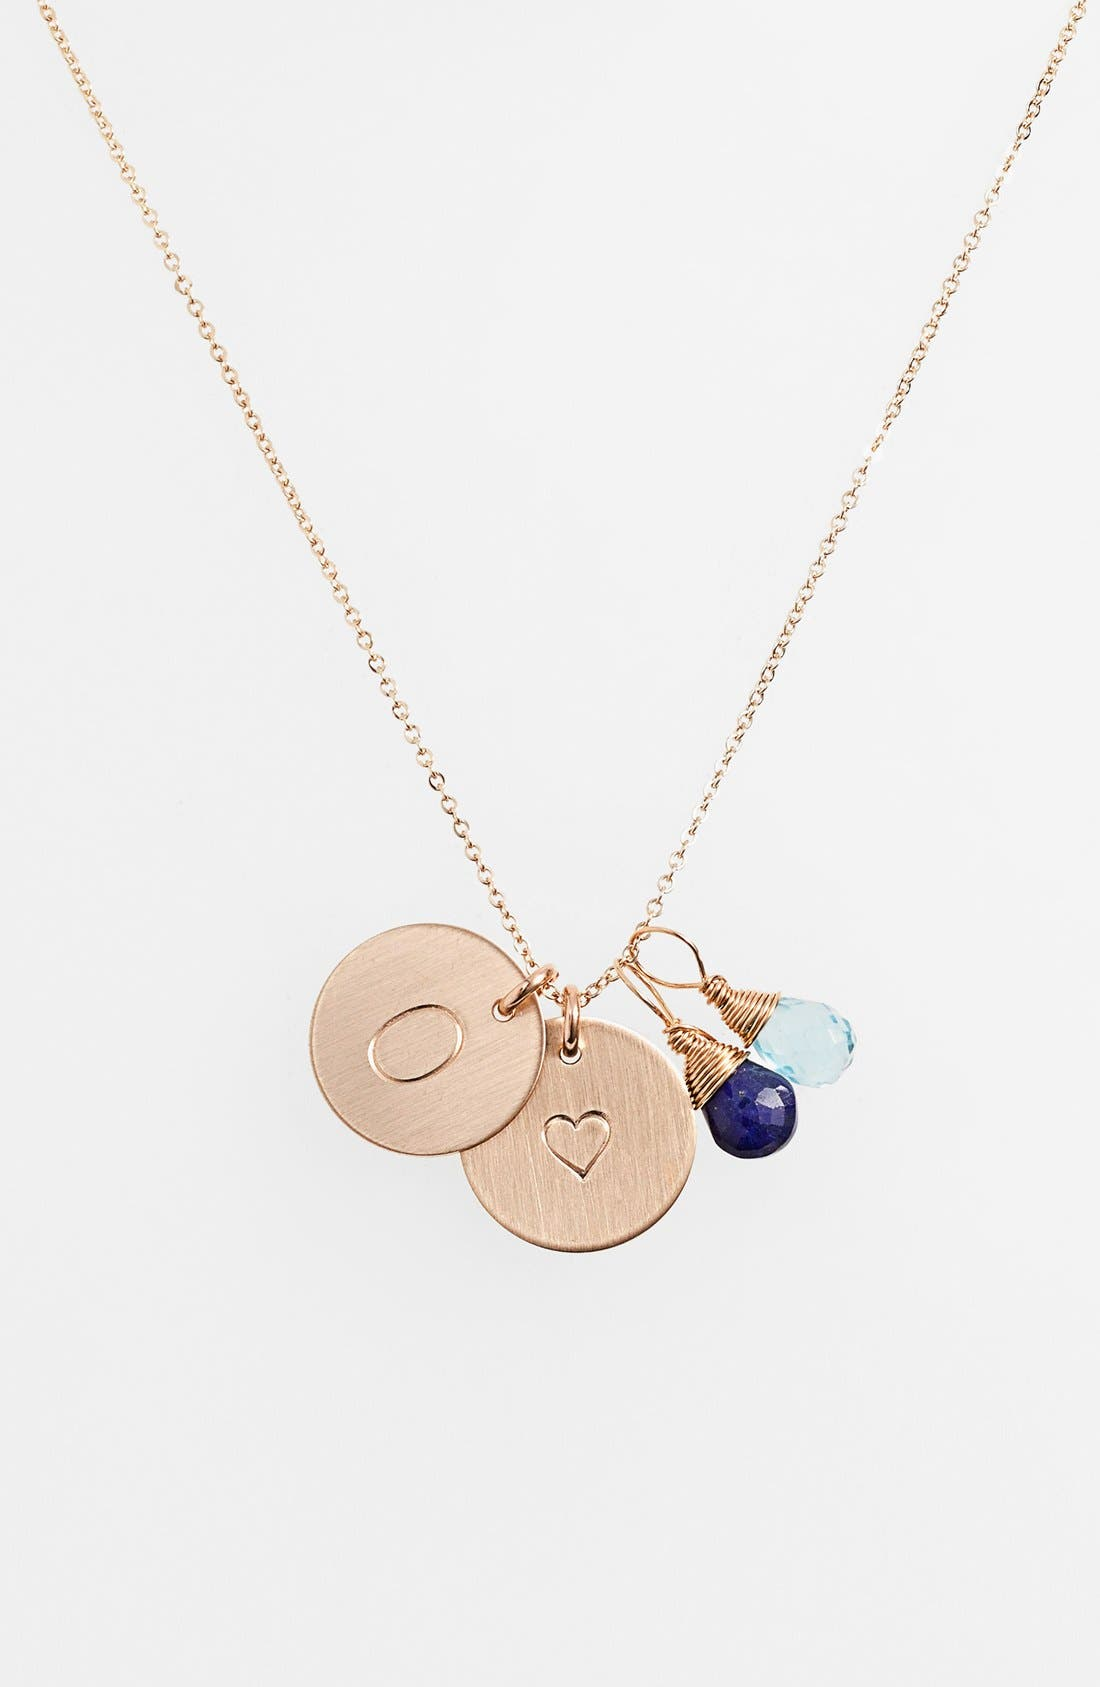 Blue Quartz Initial & Heart 14k-Gold Fill Disc Necklace,                             Main thumbnail 1, color,                             ROYAL BLUE AND OCEAN BLUE O